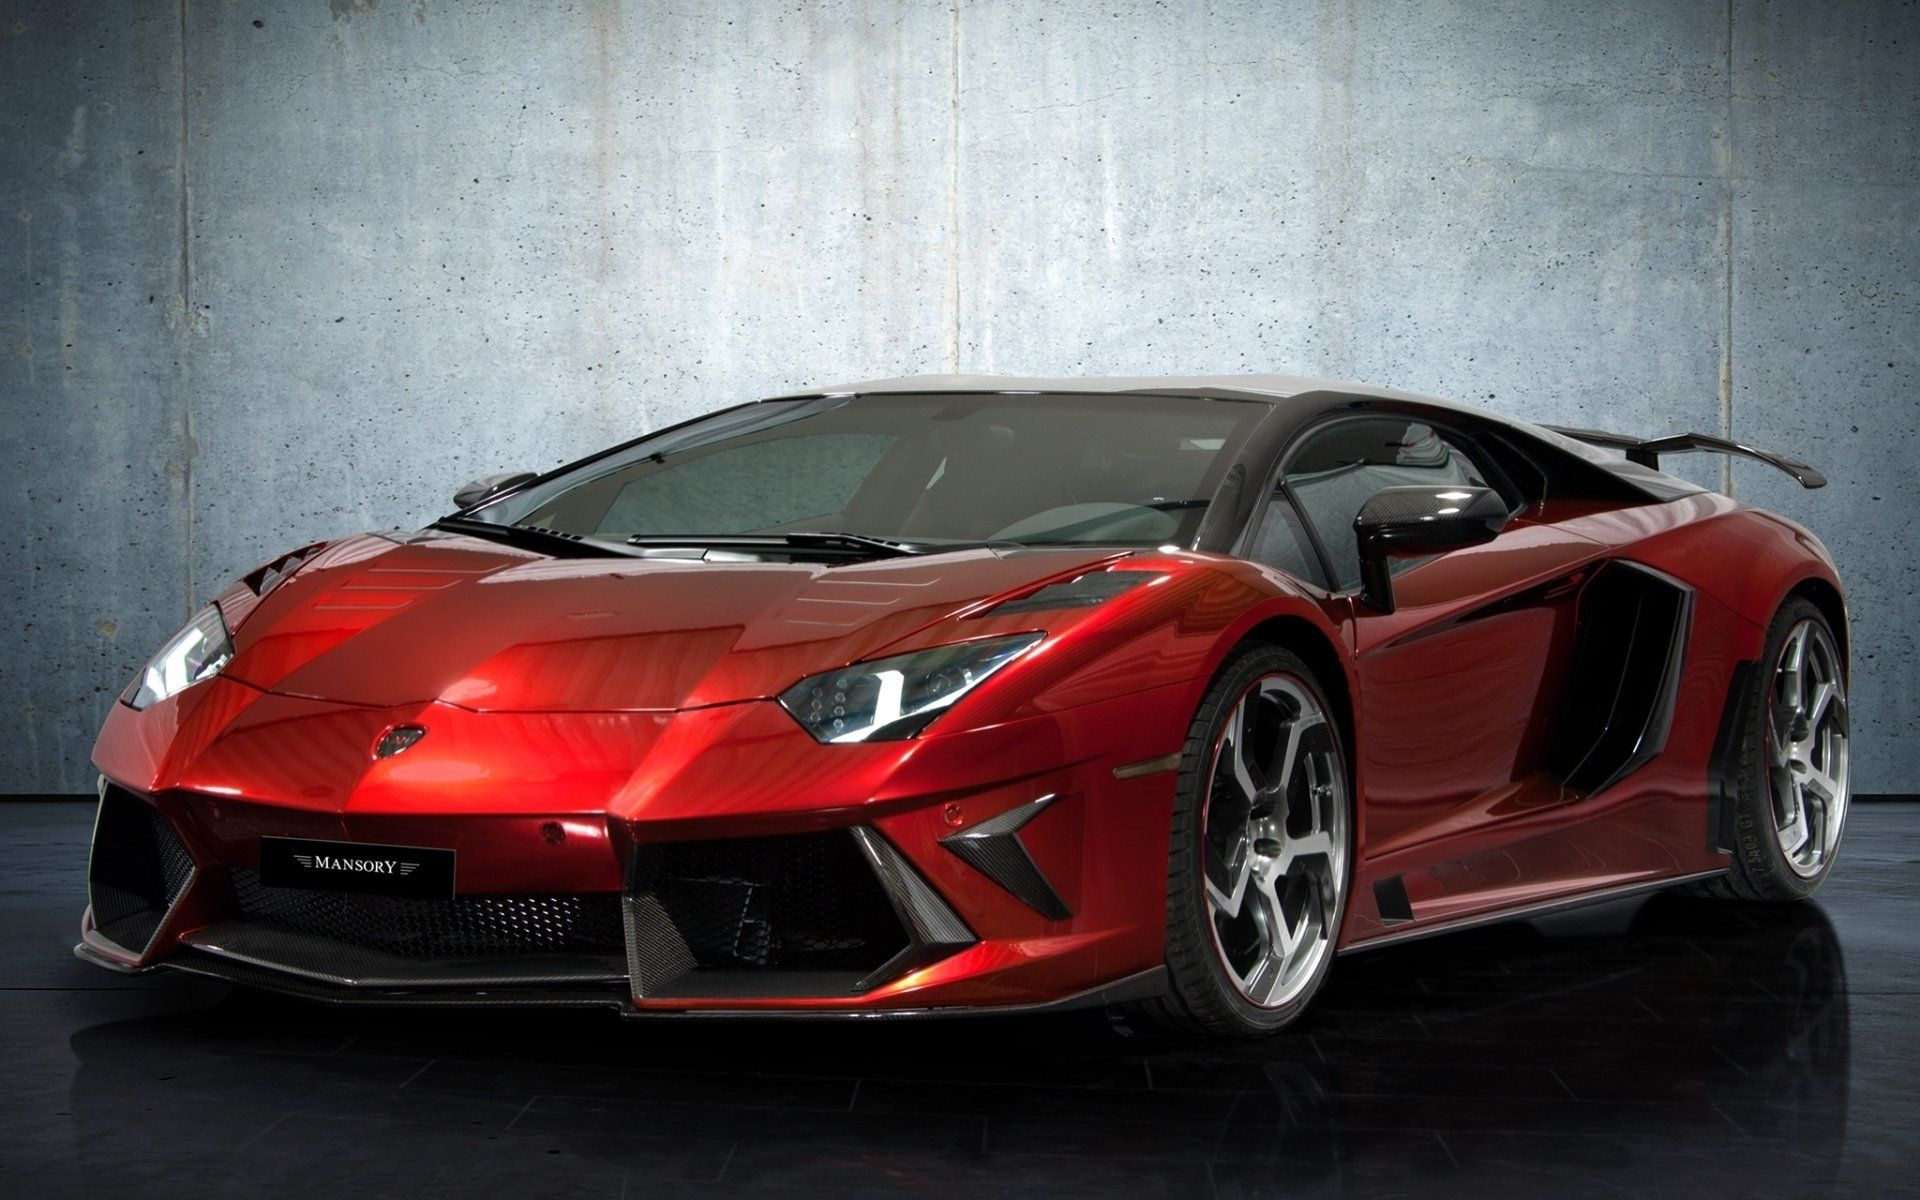 1030 Lamborghini HD Wallpapers | Backgrounds - Wallpaper Abyss